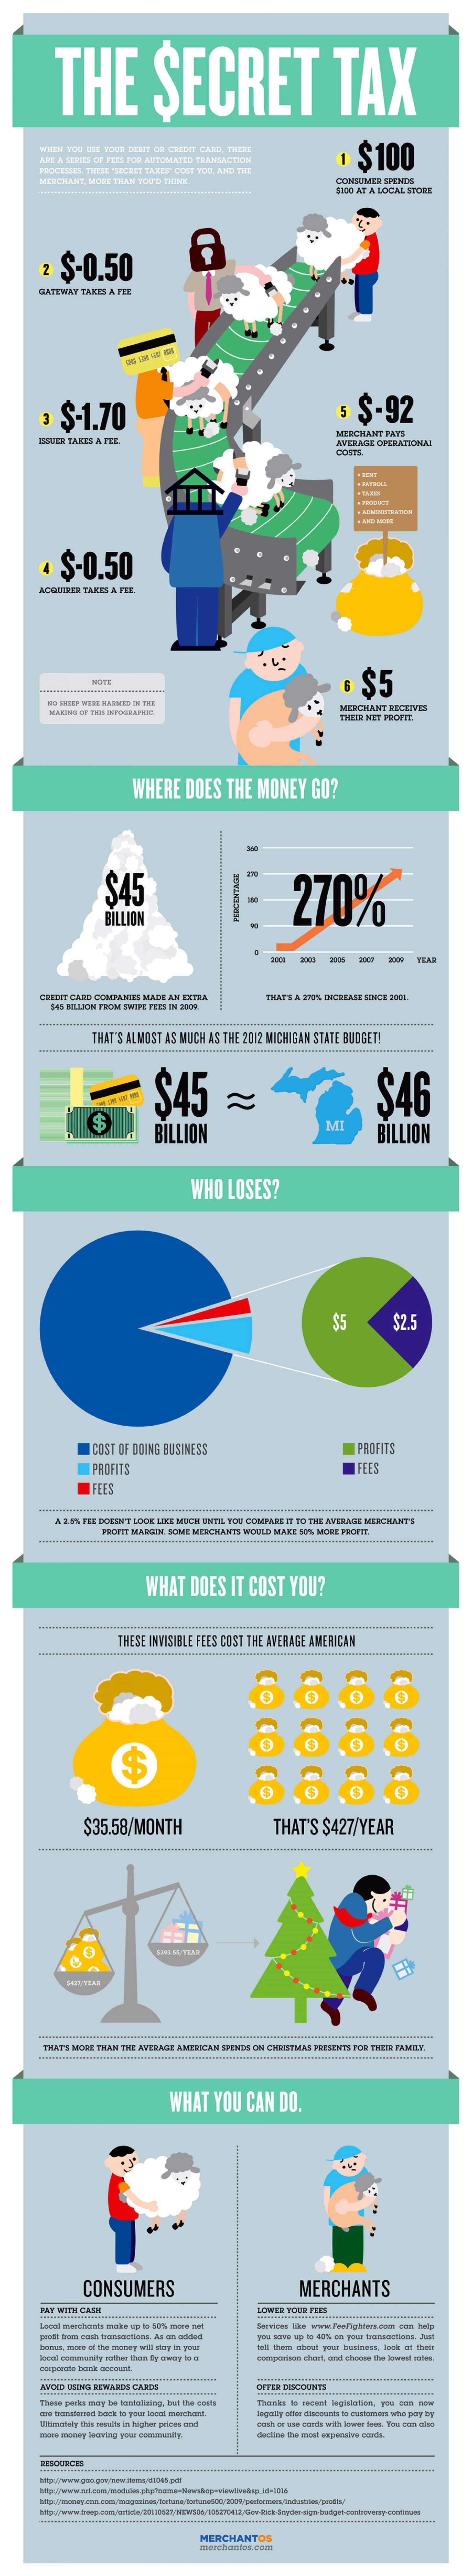 Swipe Fees: The Secret Tax Infographic